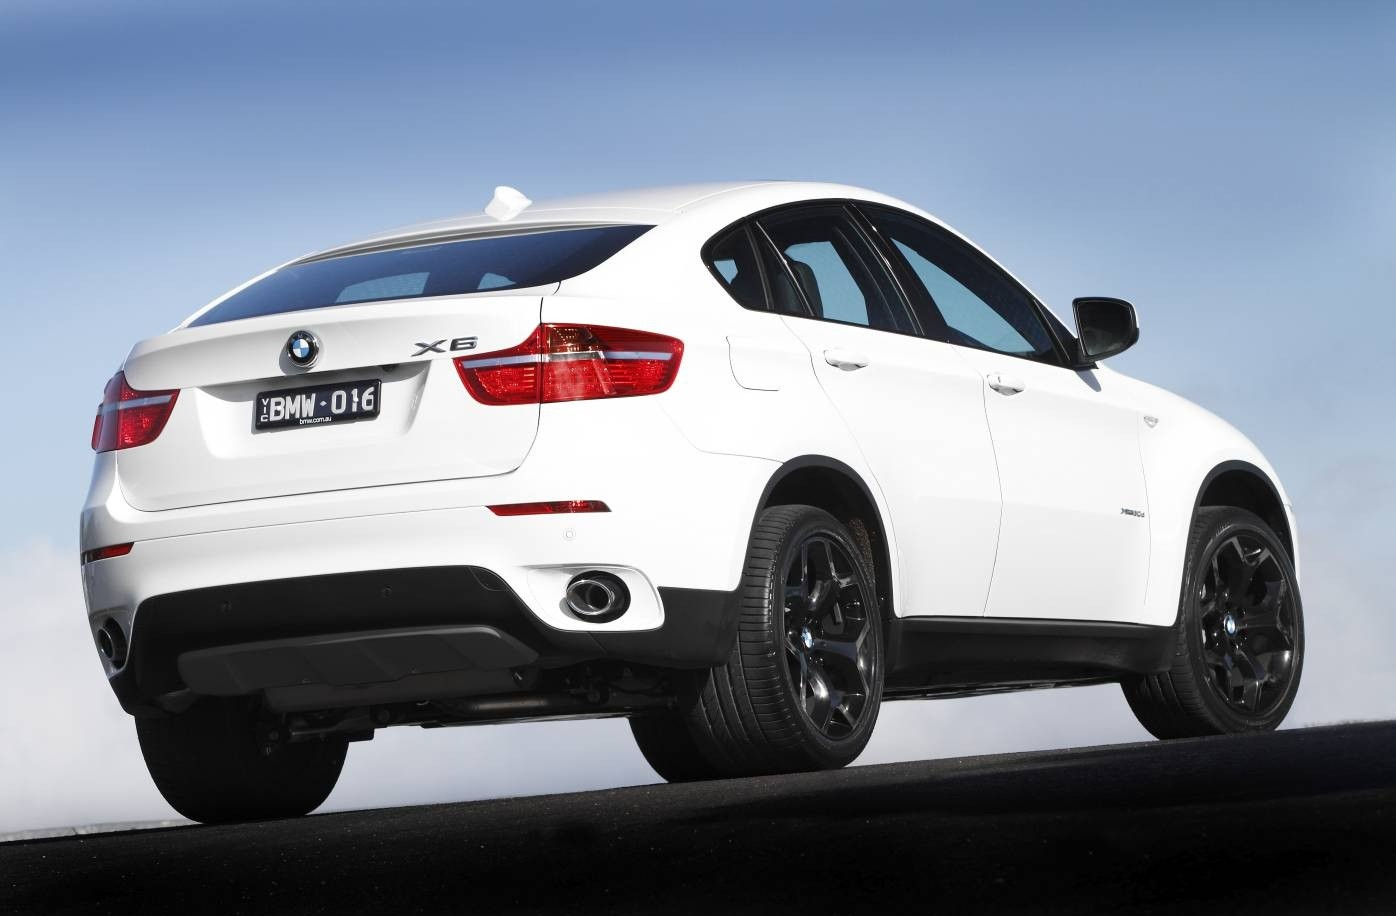 Chiptuning Bmw X6 E71 xDrive35i 3.0 Bi-Turbo 306 pk